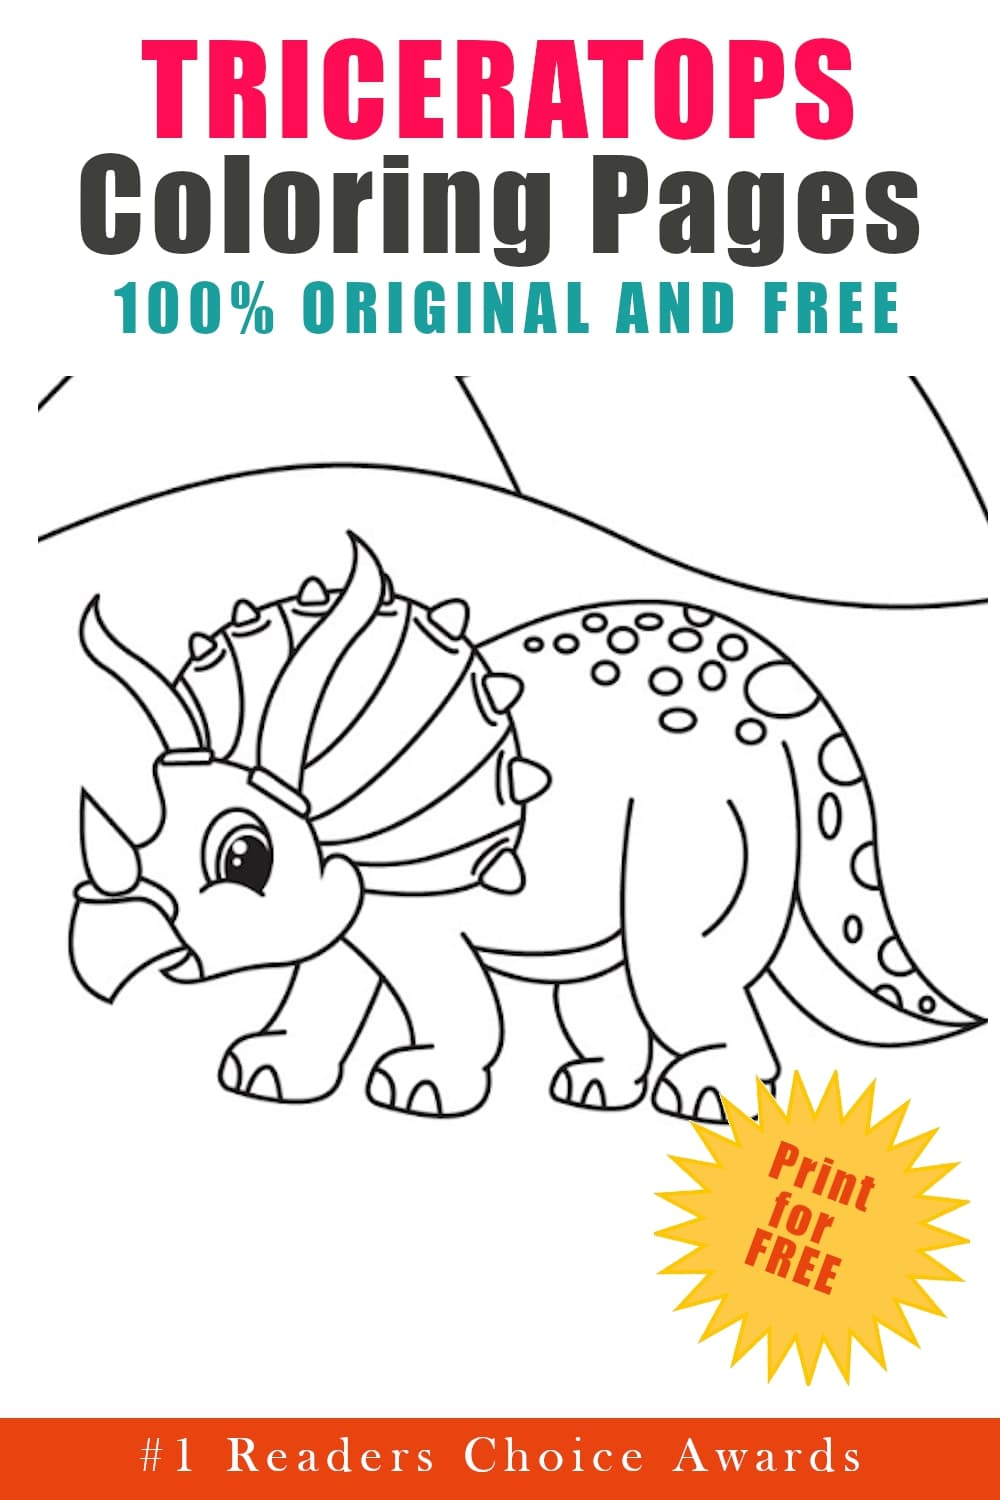 free original triceratops coloring pages